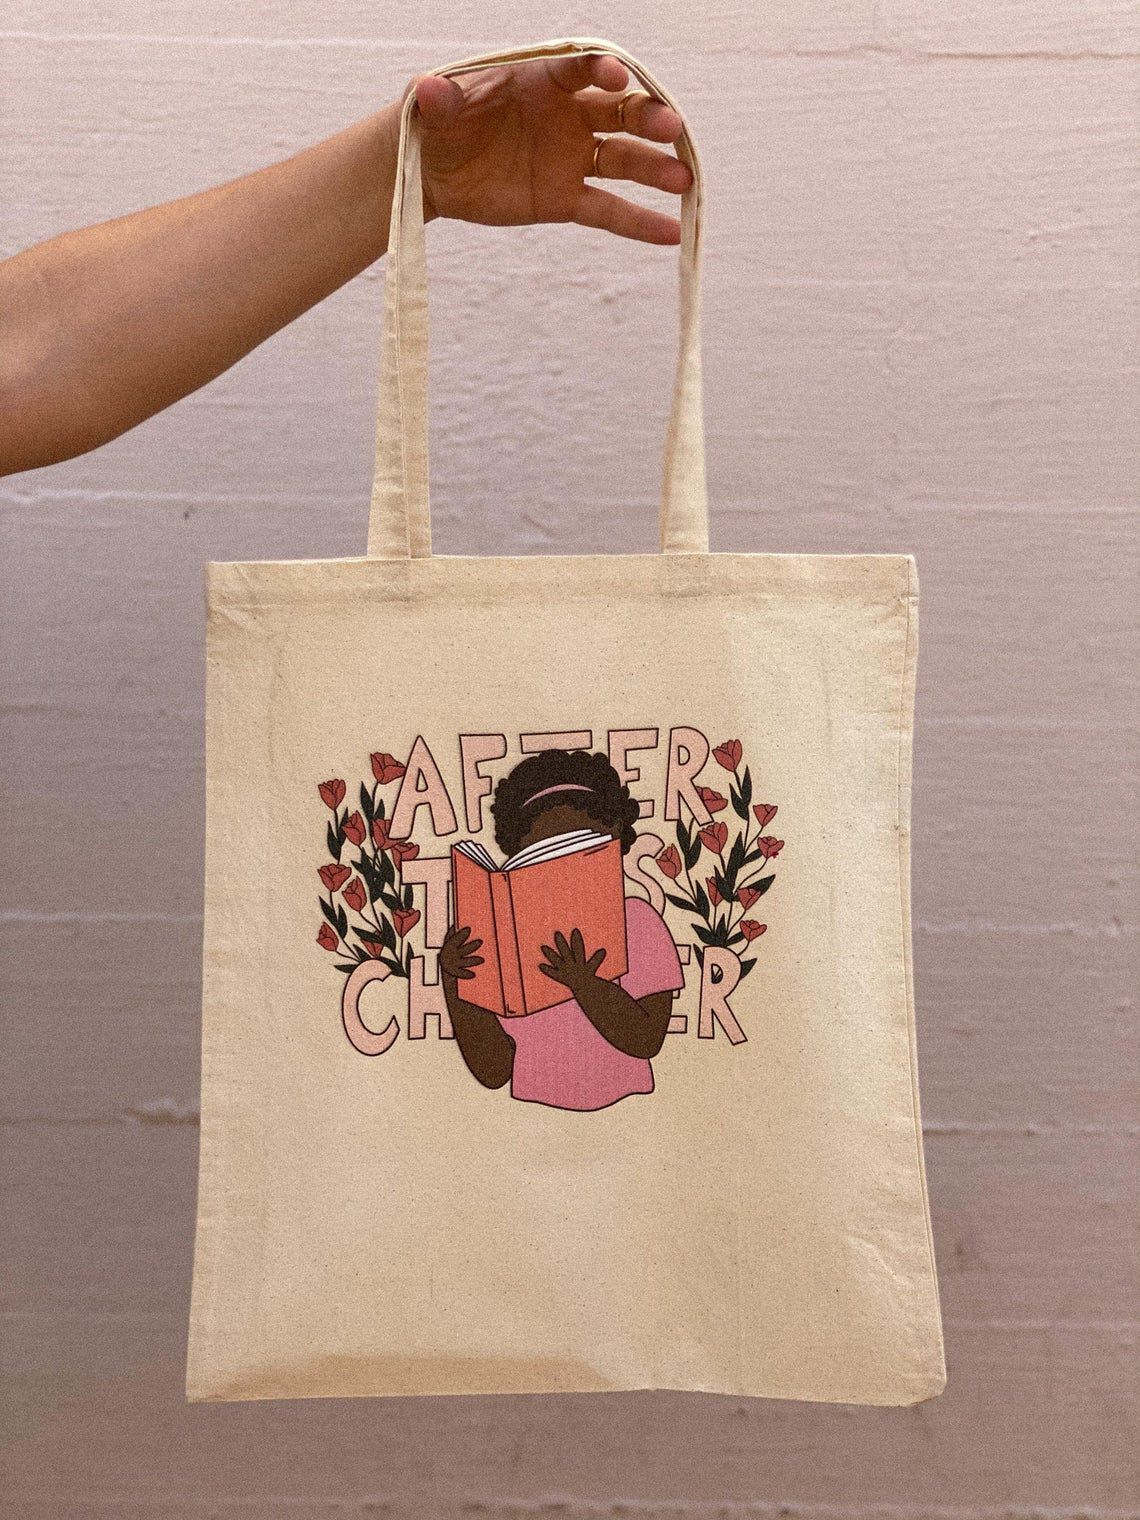 a tote bag with a person holding a book reading in front of the words after this chapter